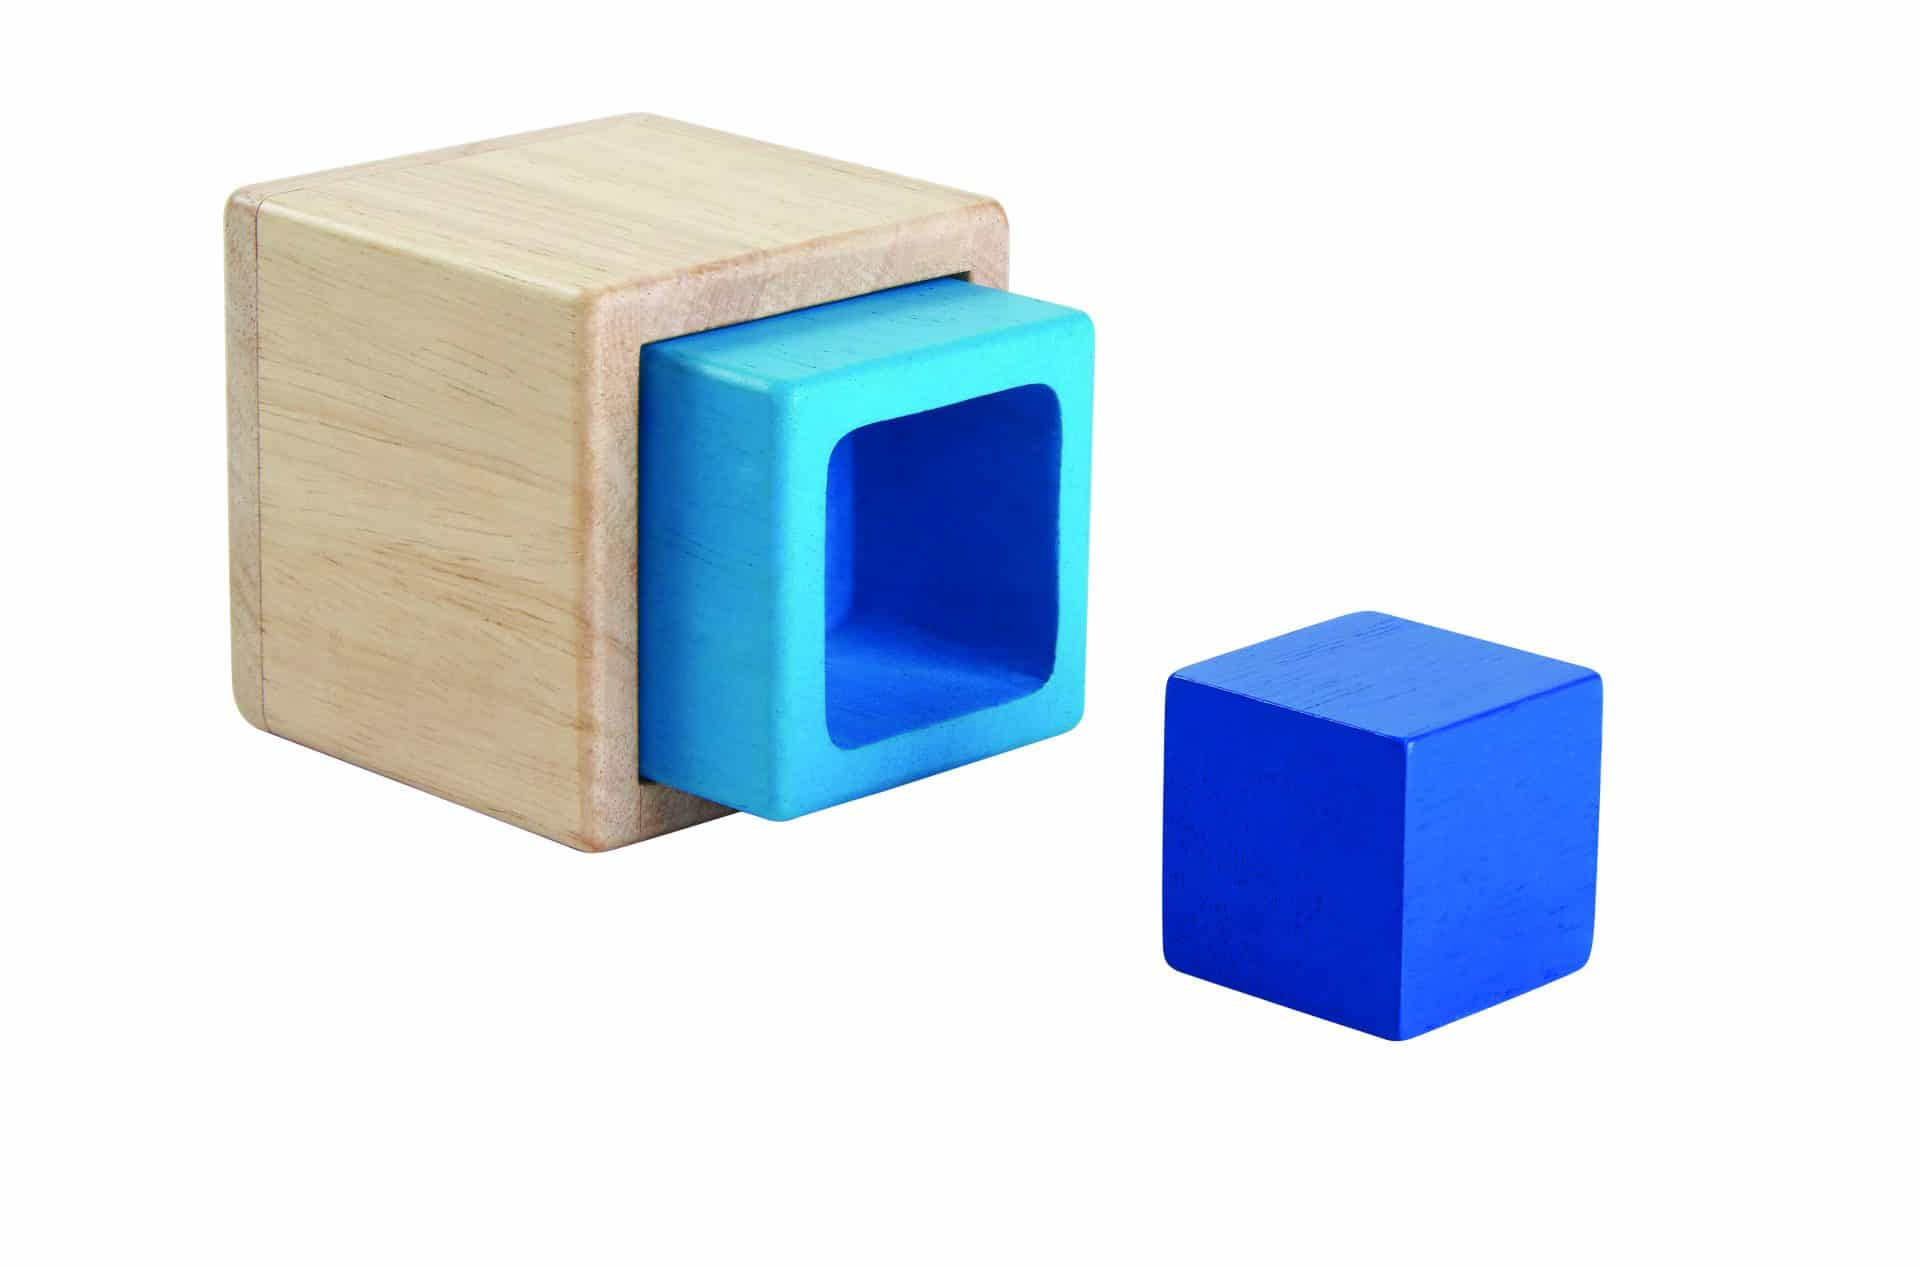 trio of wooden boxes to nest and stack